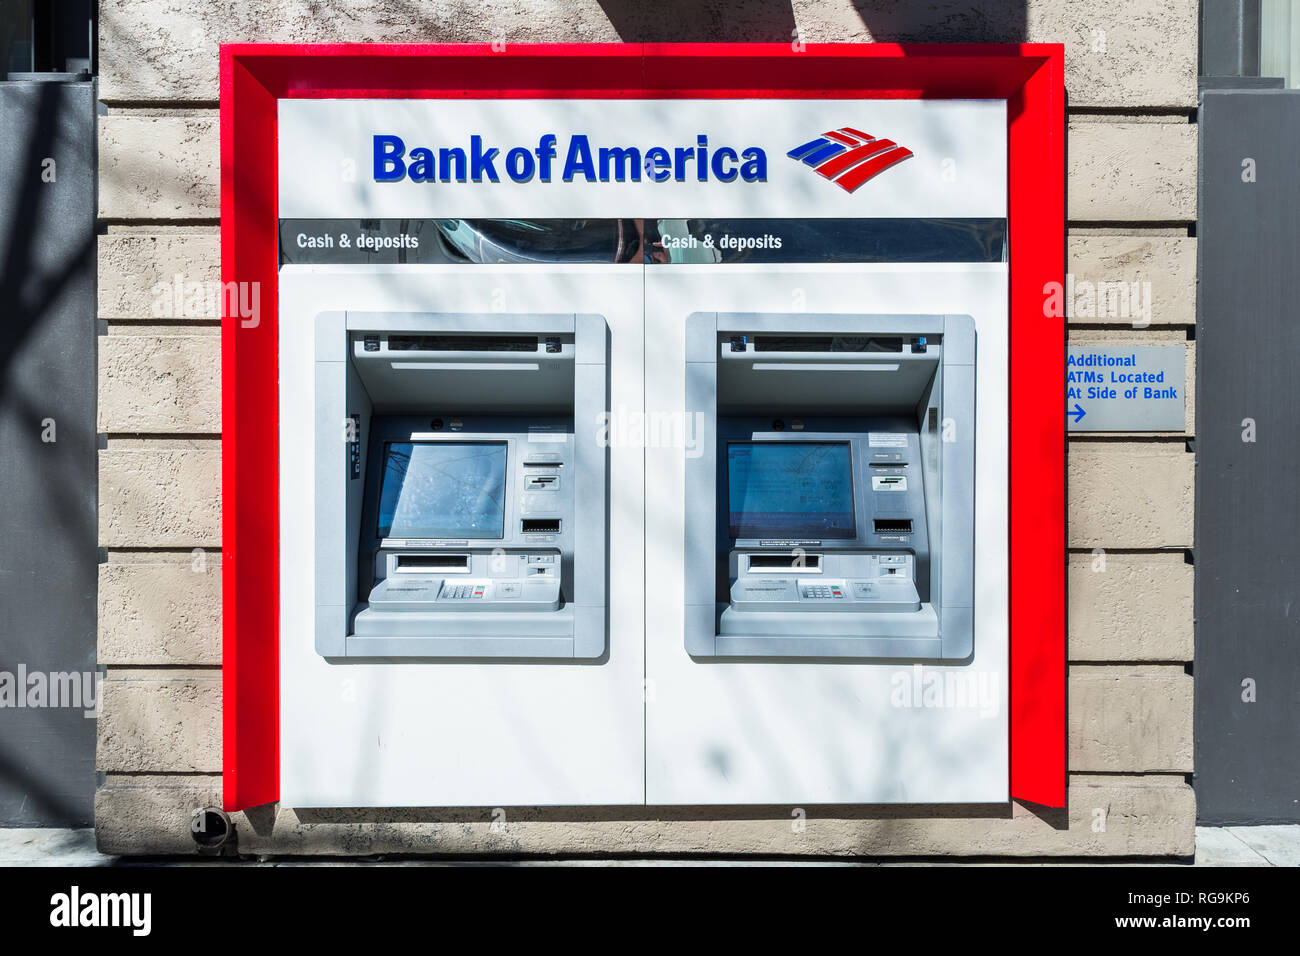 February 21, 2018 San Jose / CA / USA - Bank of America ATM's located at one of the bank's branches, San Francisco bay area - Stock Image